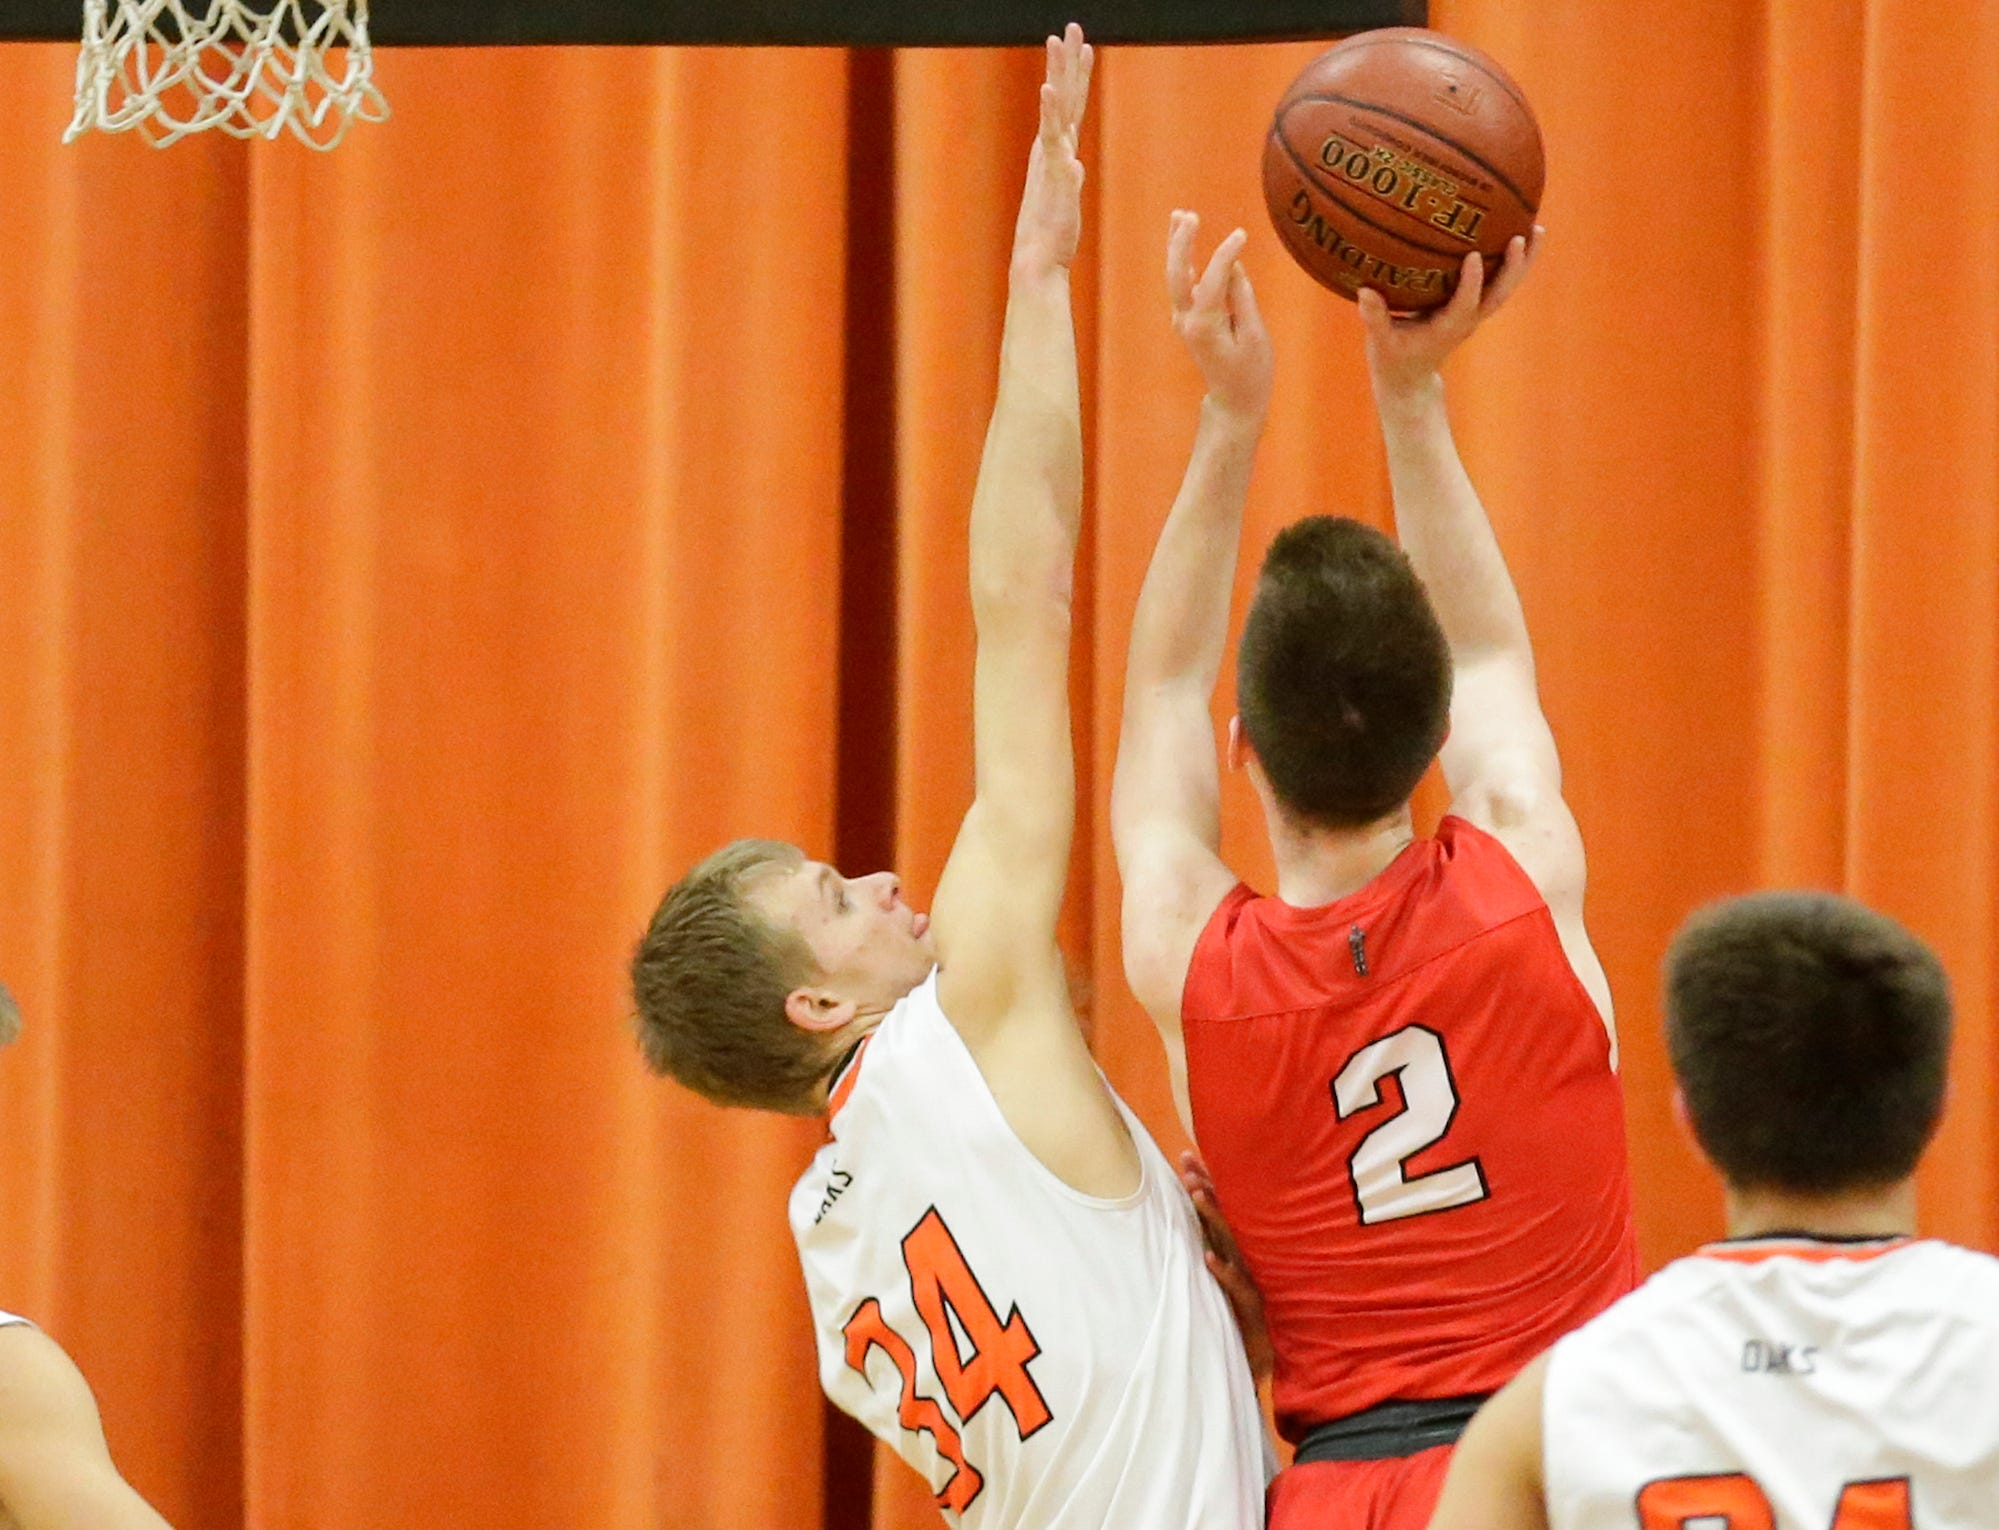 Oakfield High School boys basketball's Jaxson Hofman attempts to block a shot from Lourdes Academy's Henry Noone during their game Thursday, January 24, 2019 in Oakfield. Lourdes Academy won the game 83-48. Doug Raflik/USA TODAY NETWORK-Wisconsin